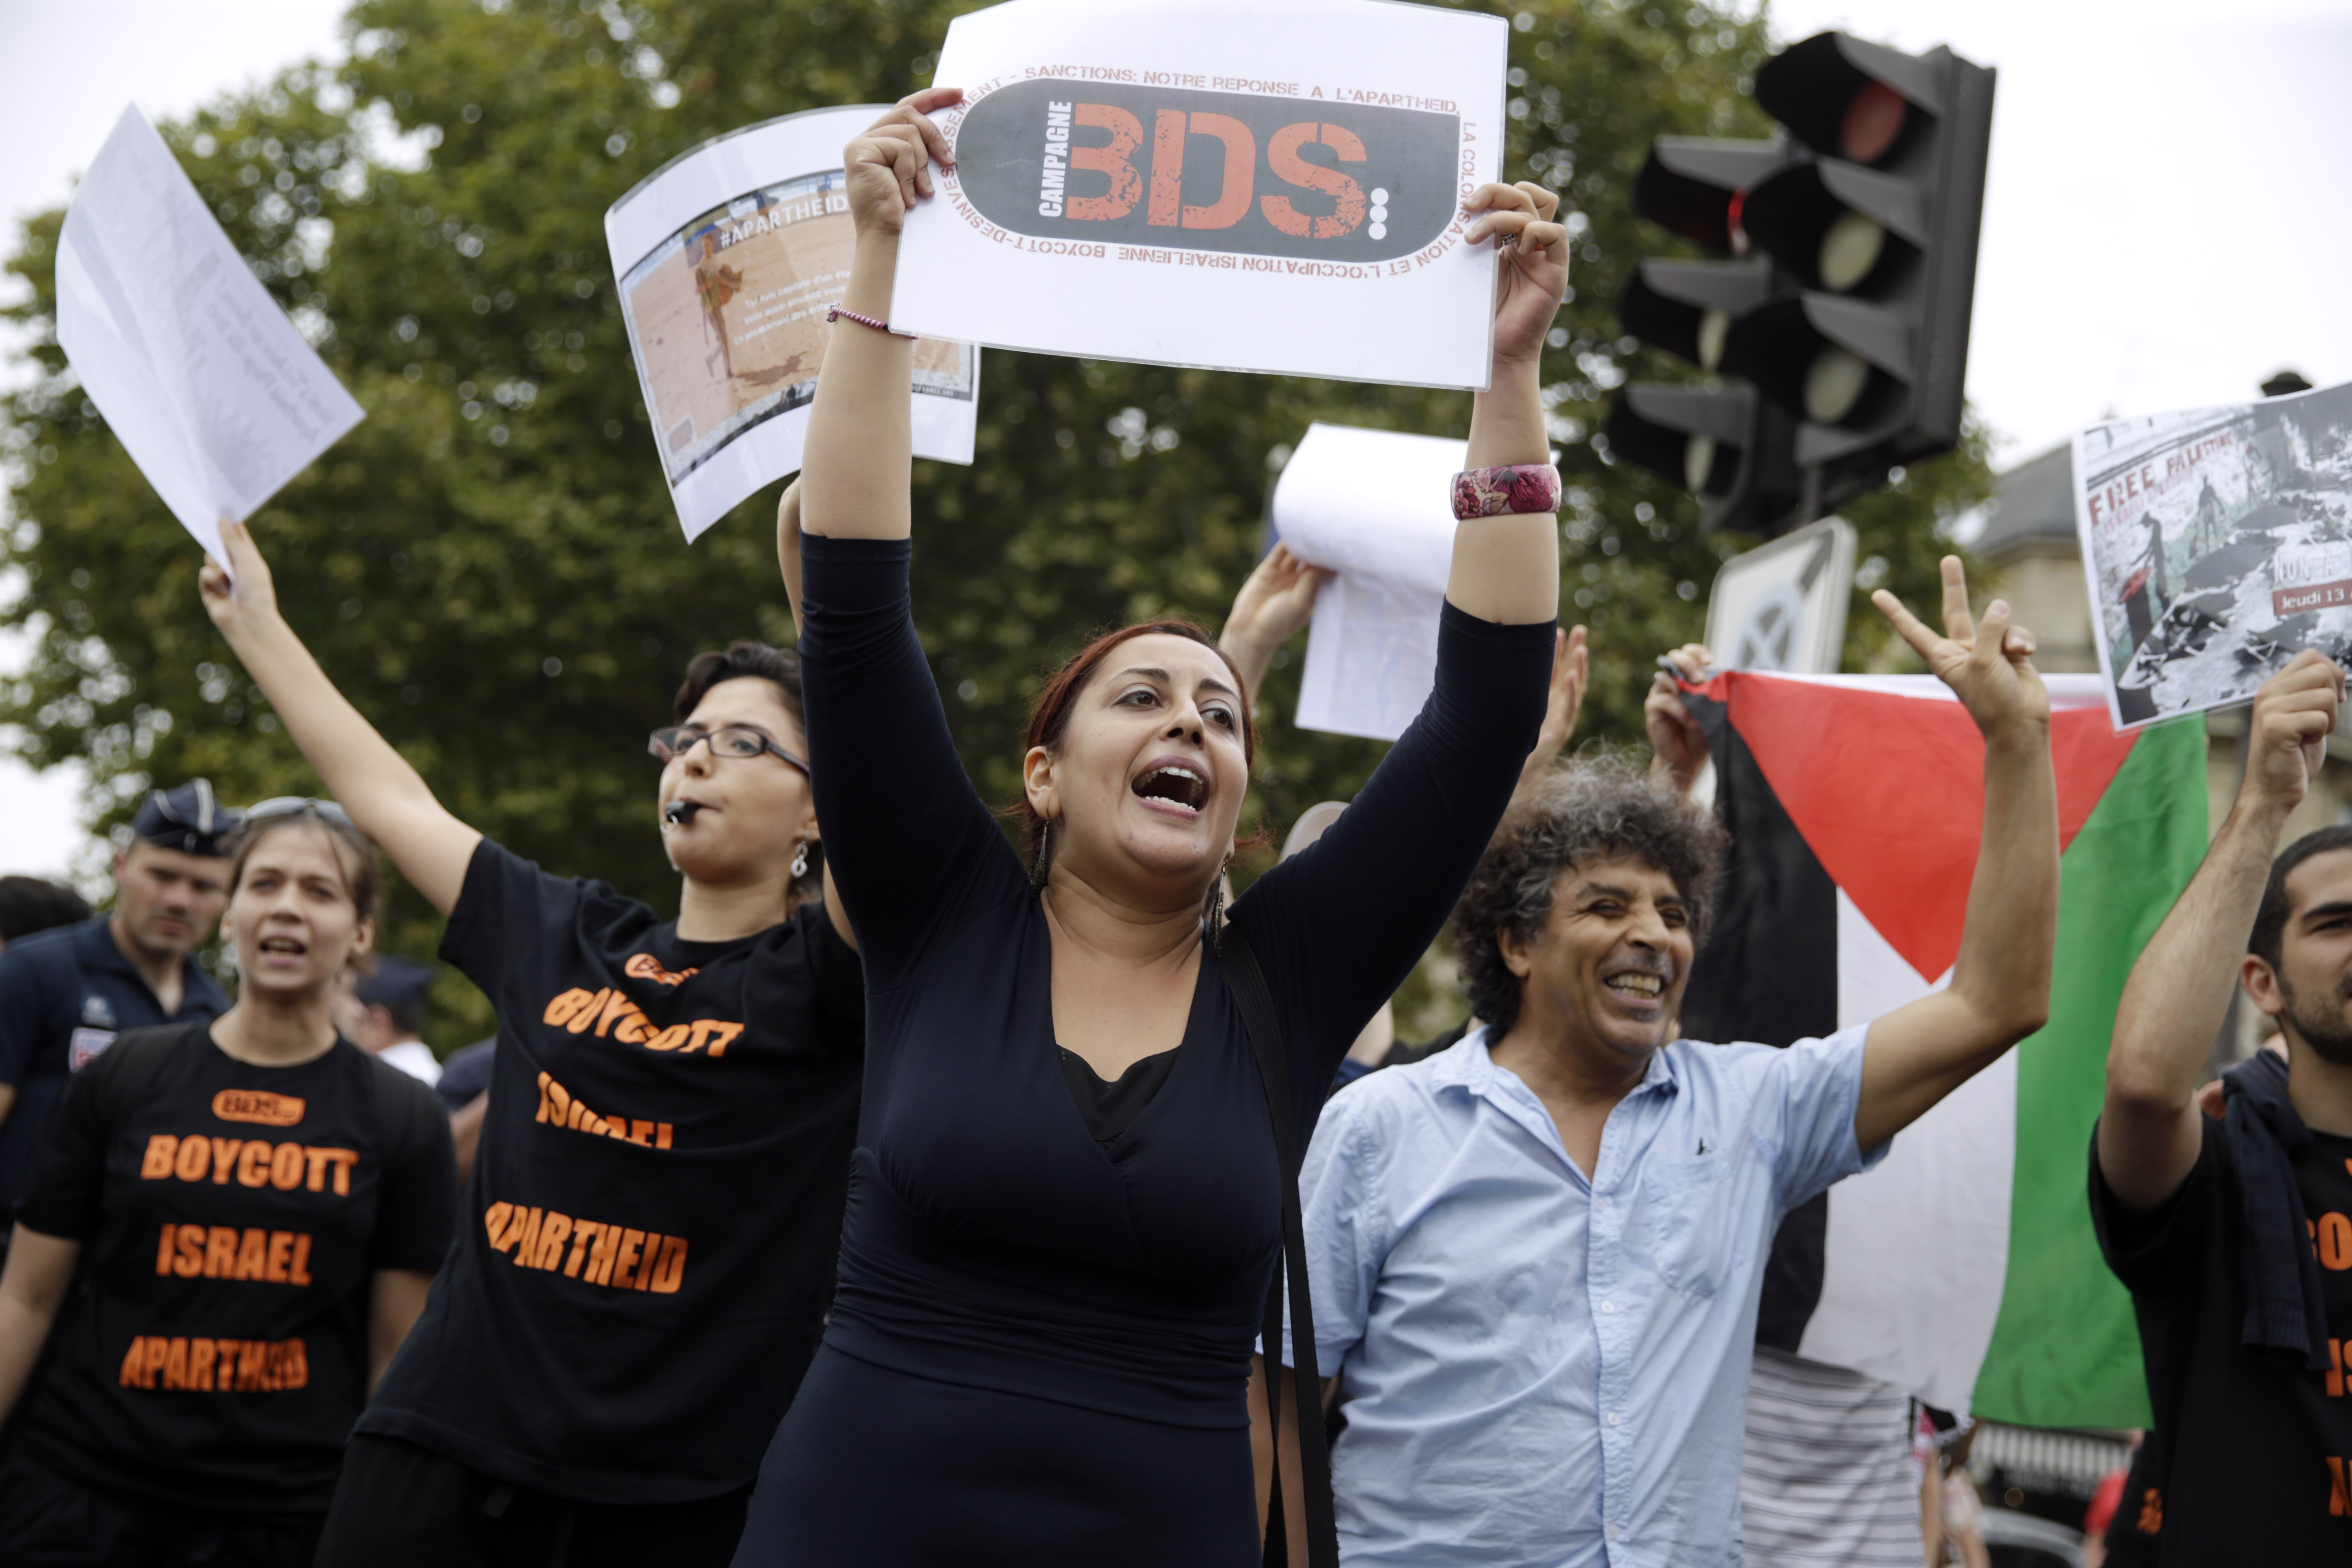 """A Pro-Palestinian """"Gaza Beach"""" protestor holds a placard reading """"BDS (Boycotts, divestment and sanctions) during a gathering on the sidelines of """"Tel Aviv Sur Seine"""", a beach event celebrating Tel Aviv, in central Paris on August 13, 2015. A Paris beach event celebrating Tel Aviv attracted a handful of visitors but a huge number of journalists, riot police and security guards, as well as a much larger """"Gaza Beach"""" protest. Bemused locals who headed down to """"Tel Aviv Sur Seine"""" had to manoeuvre through bag checks, security pat-downs and metal detectors to reach the small stretch of sand on the banks of the Seine. AFP PHOTO / KENZO TRIBOUILLARD"""